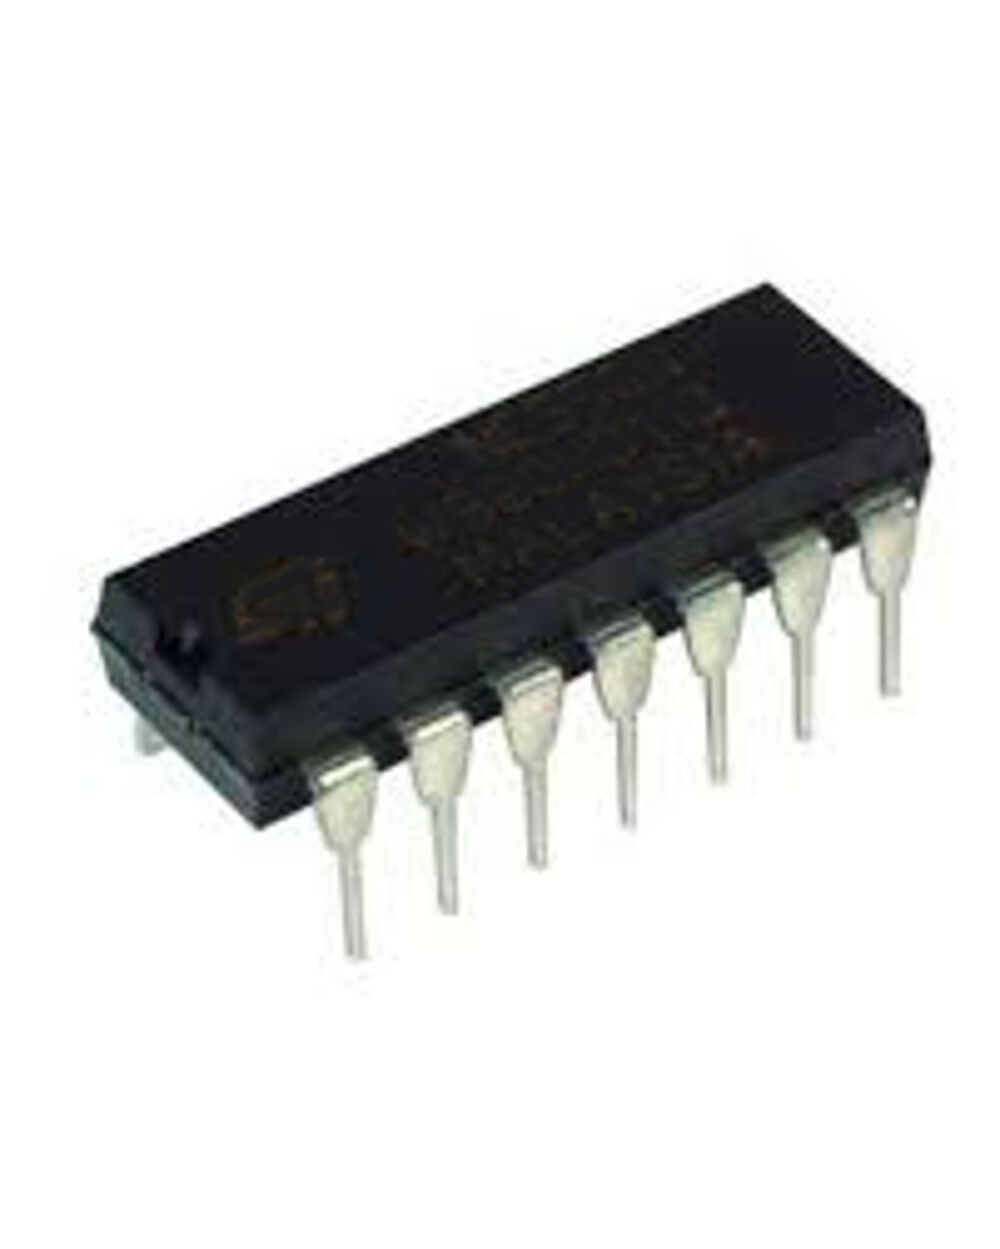 Lm324n Quad Op Amp Ic 14 Pin Dil 100 Picclick Uk Lm358nlow Power Dual Operational Amplifiers 1 Of See More